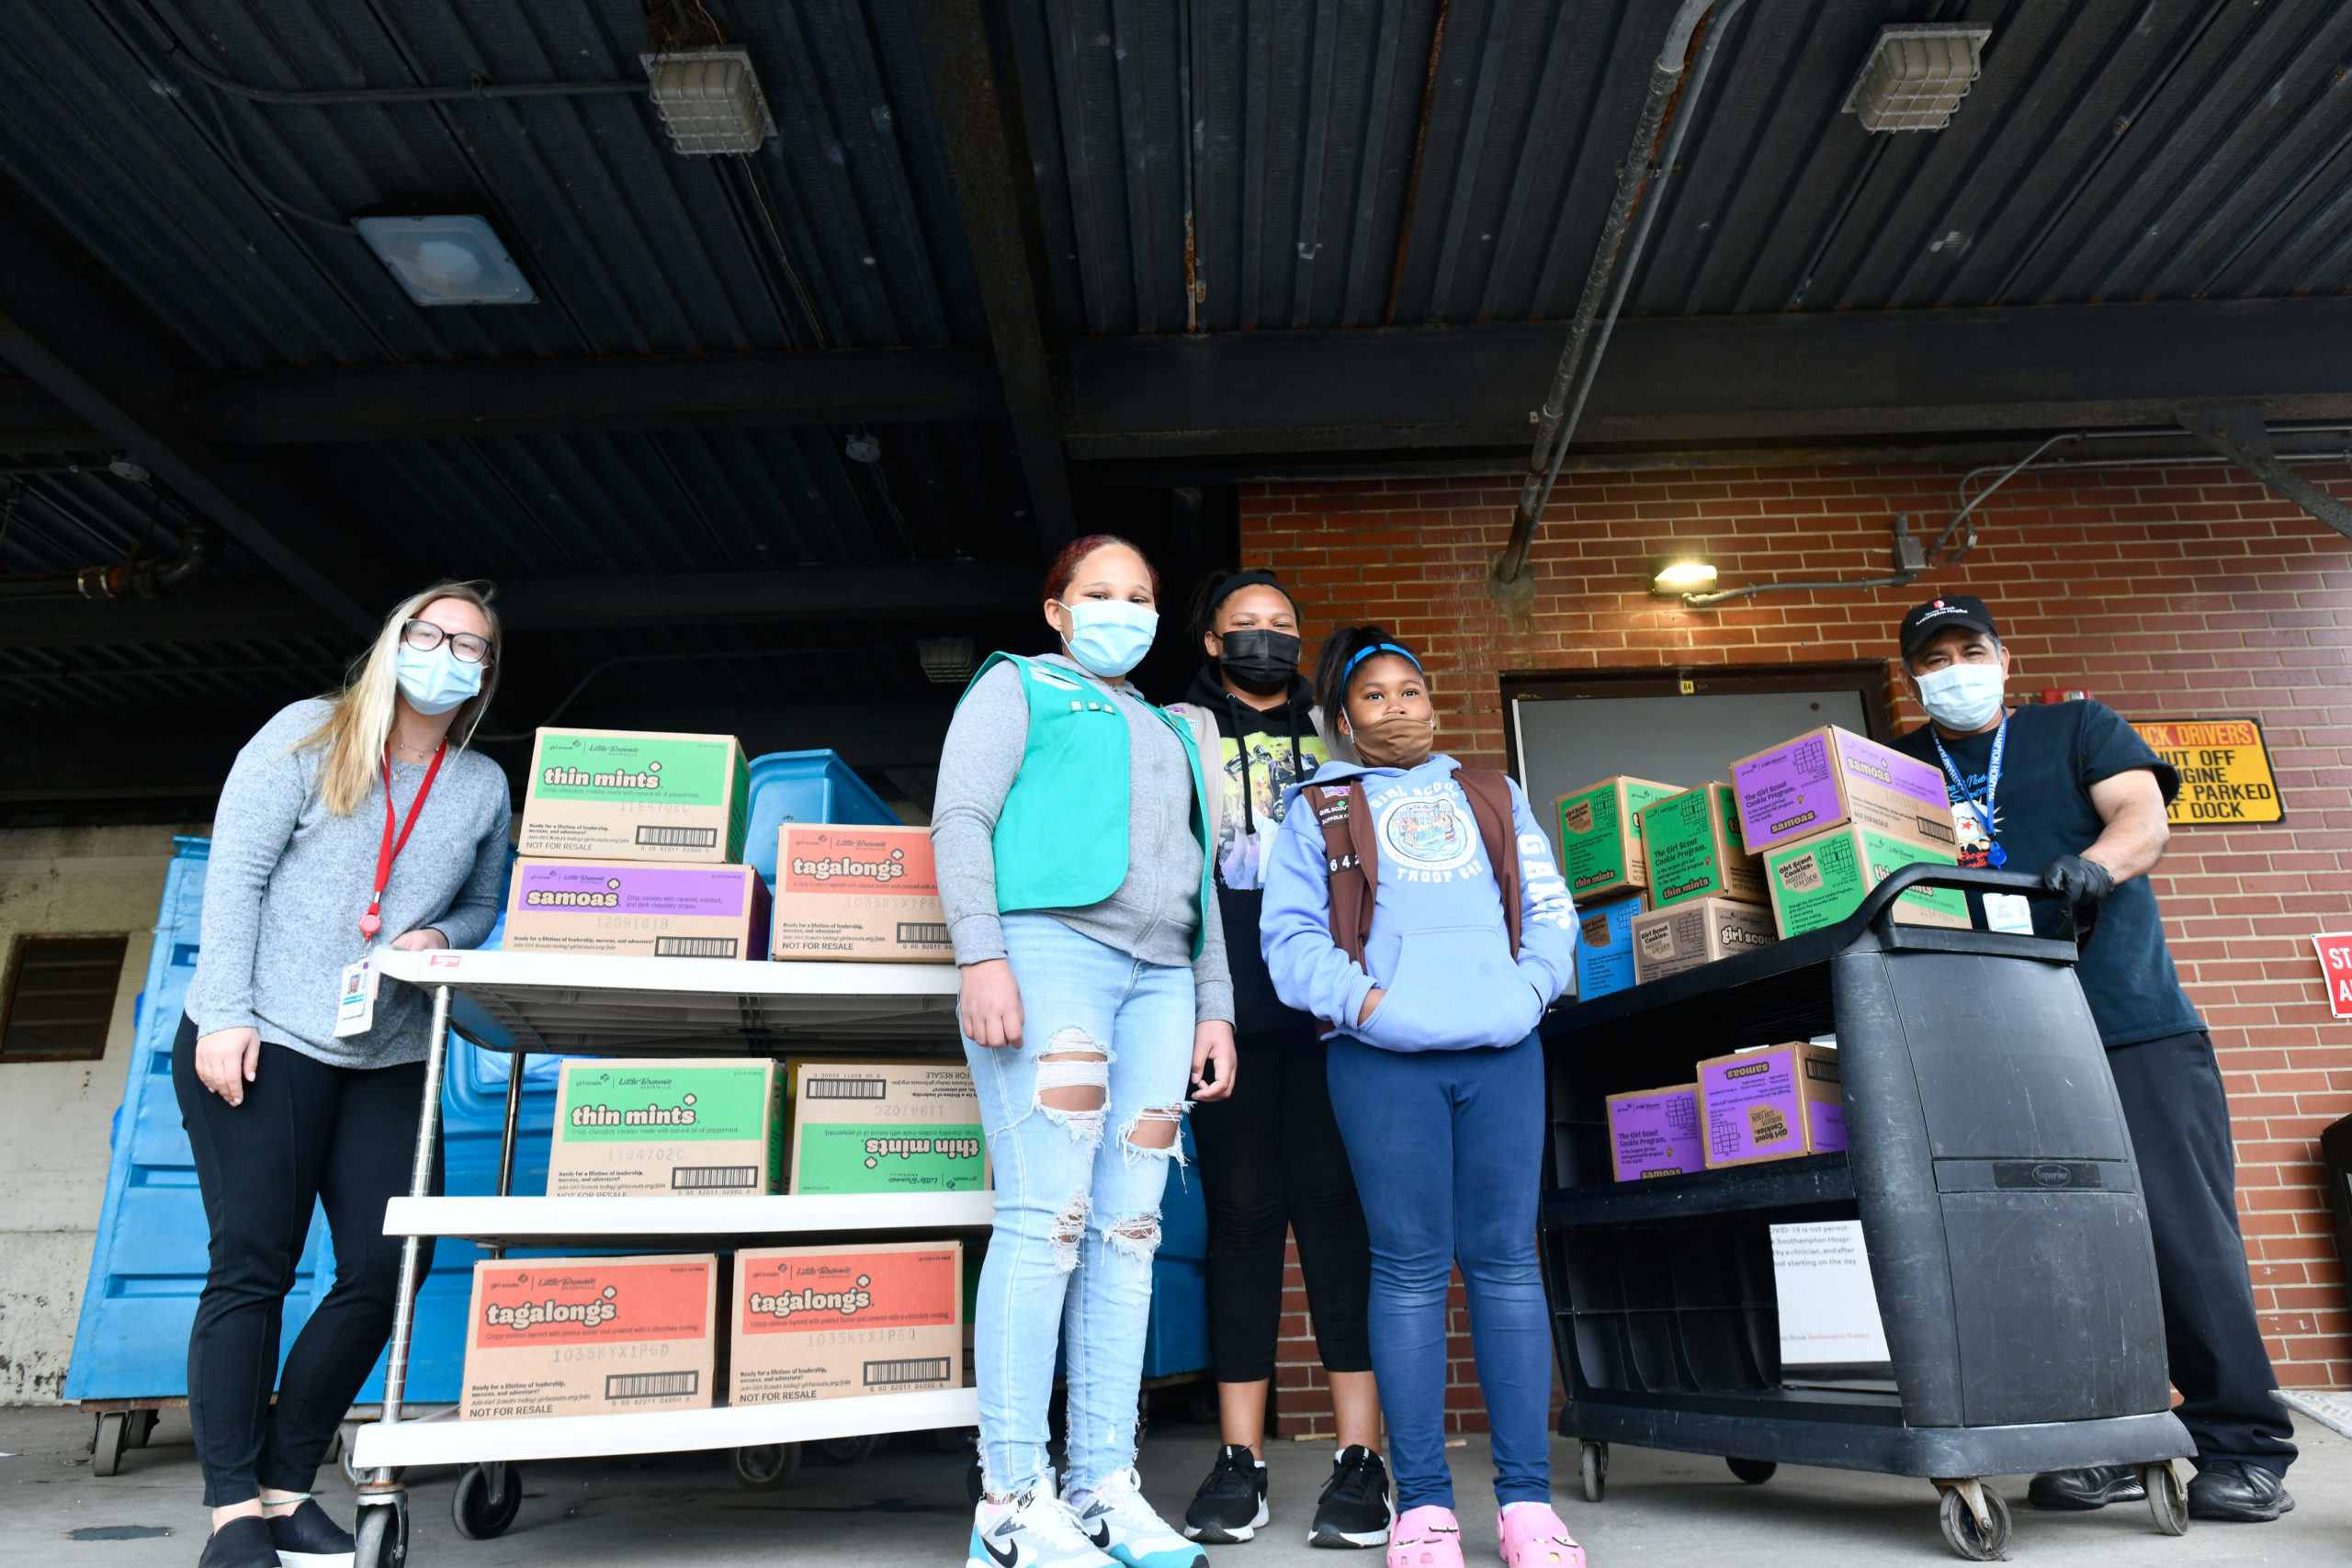 Members of Girl Scout Troop 642, Gabriella Gaines, Syvana Smith and Jordyn Smith, from the Shinnecock Nation dropped off 300 boxes (25 cases) of Girls Scout Cookies for the employees at Stony Brook Southampton Hospital on Sunday. May 2. Helping the girls unload are hospital employees Victoria Stanek and Cesar Flores.  DANA SHAW